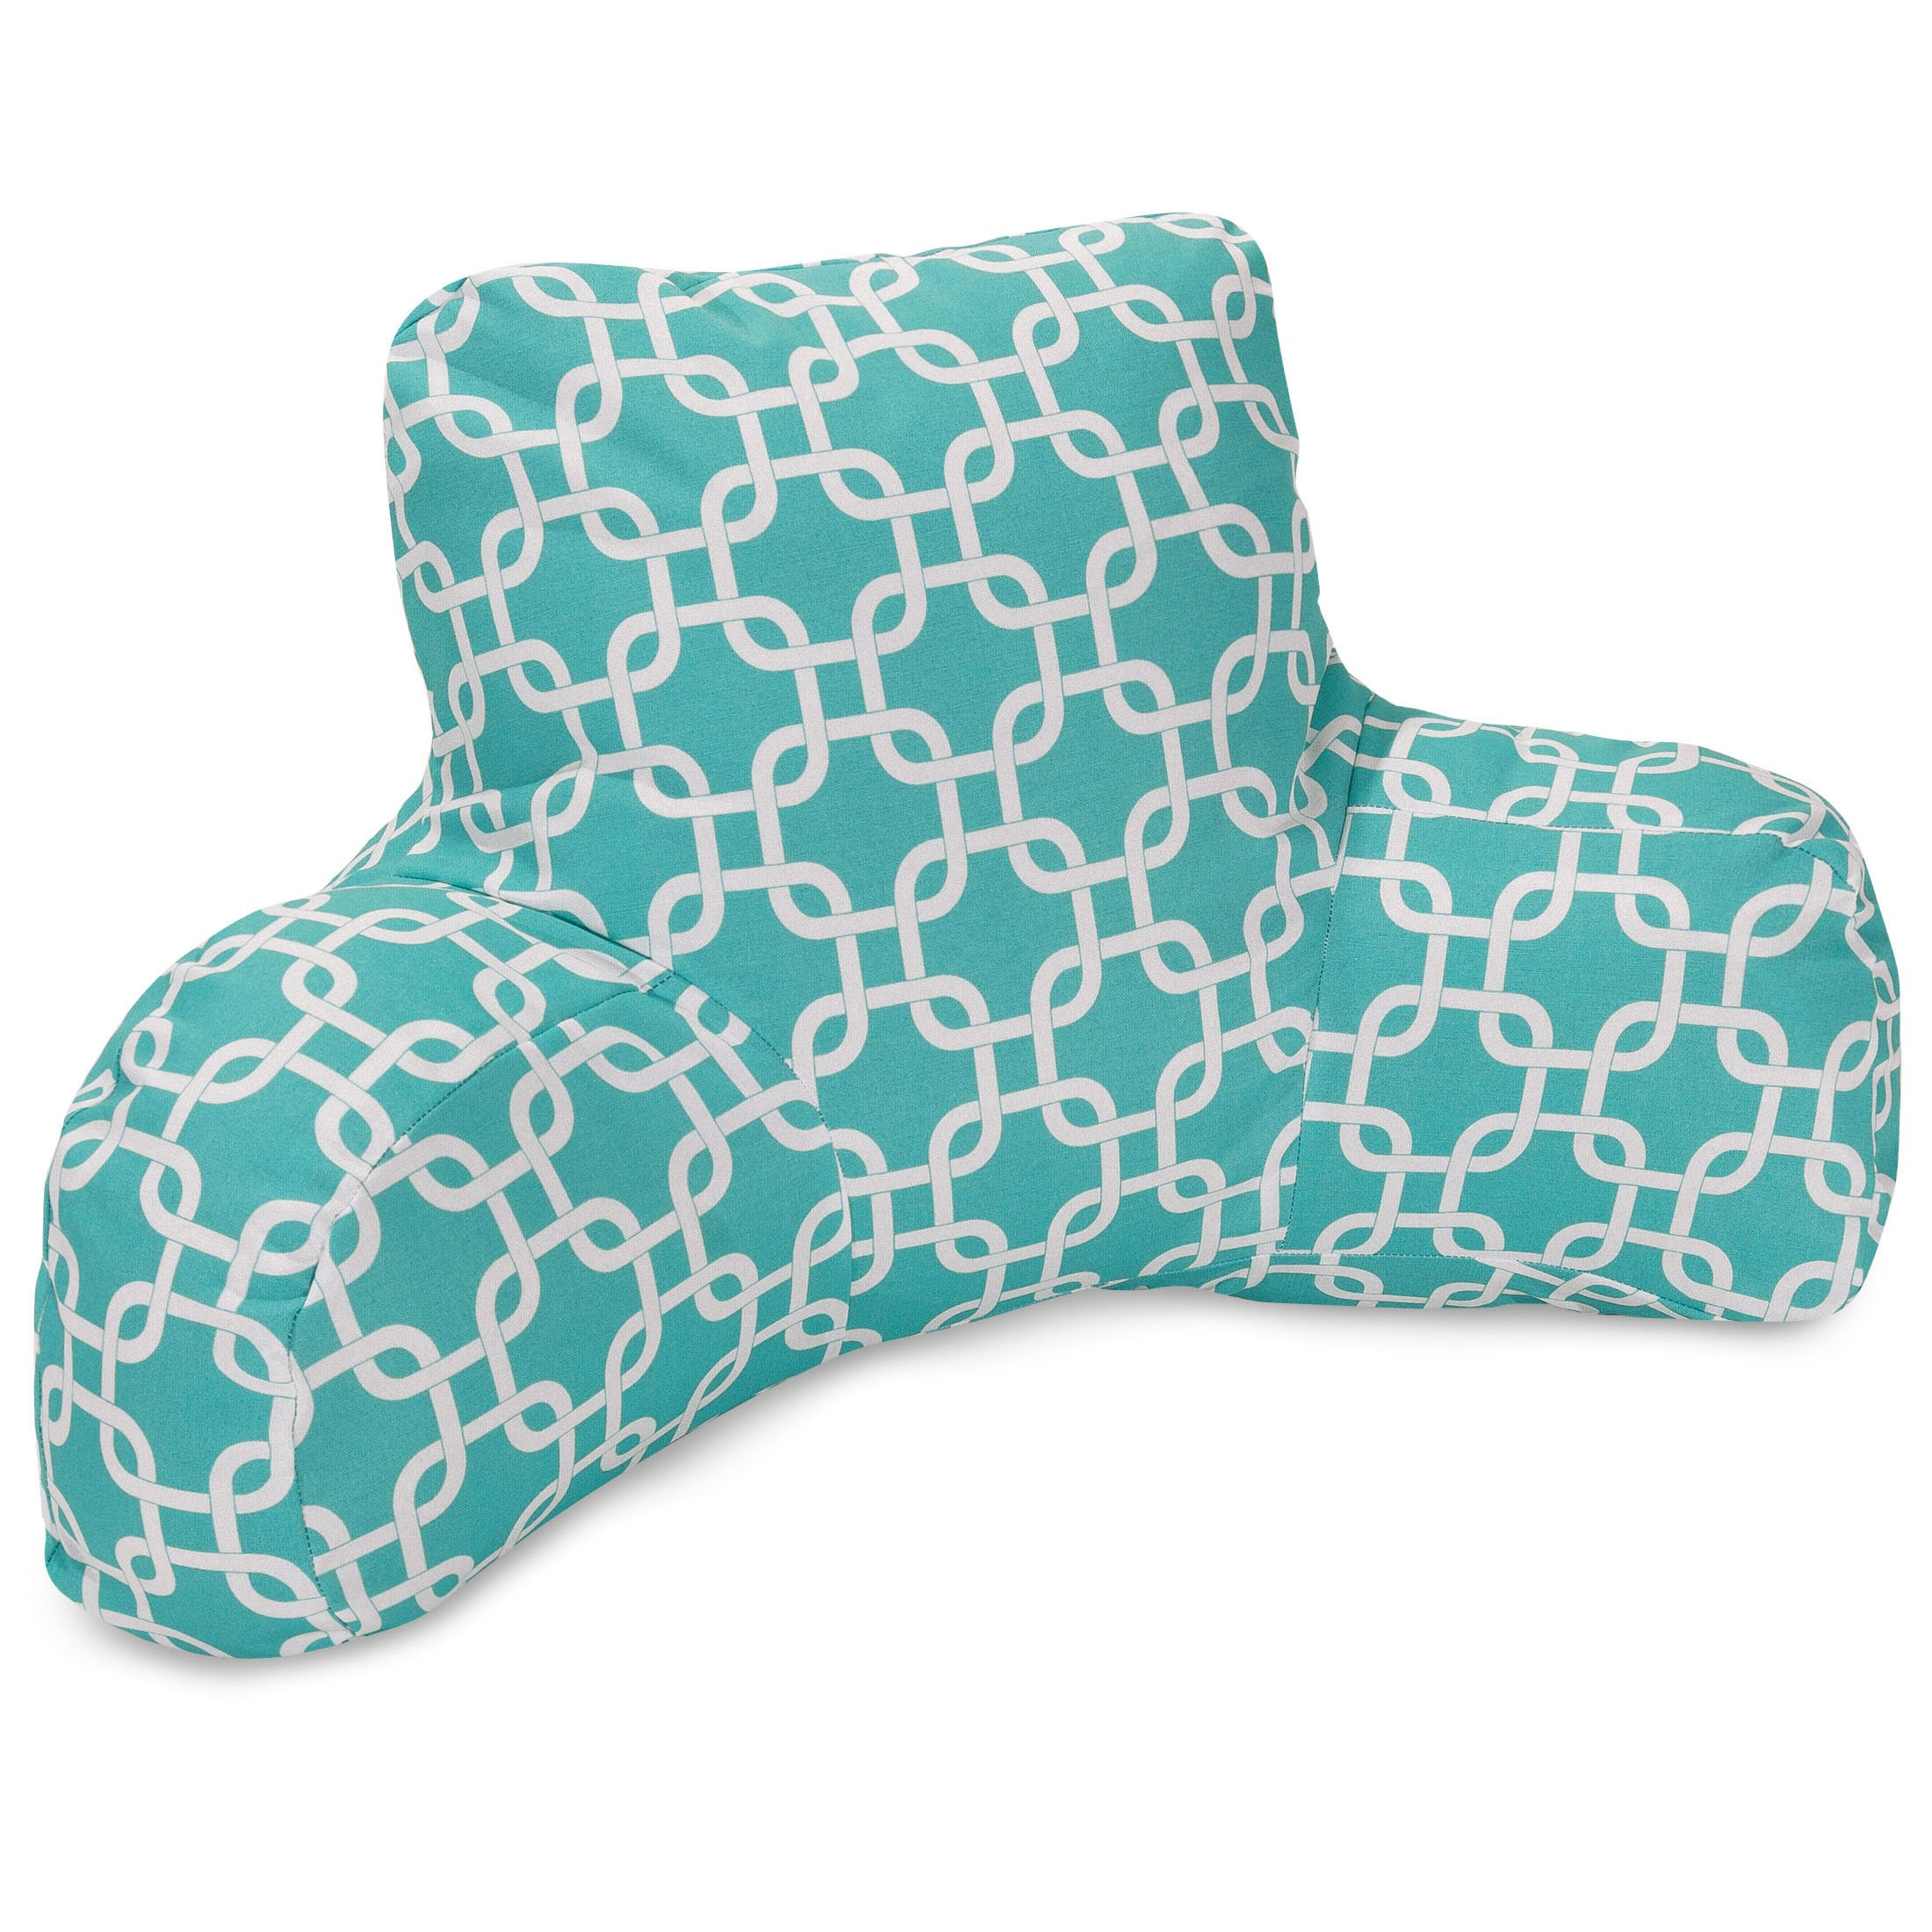 Majestic Home Goods Links Reading Pillow, Teal